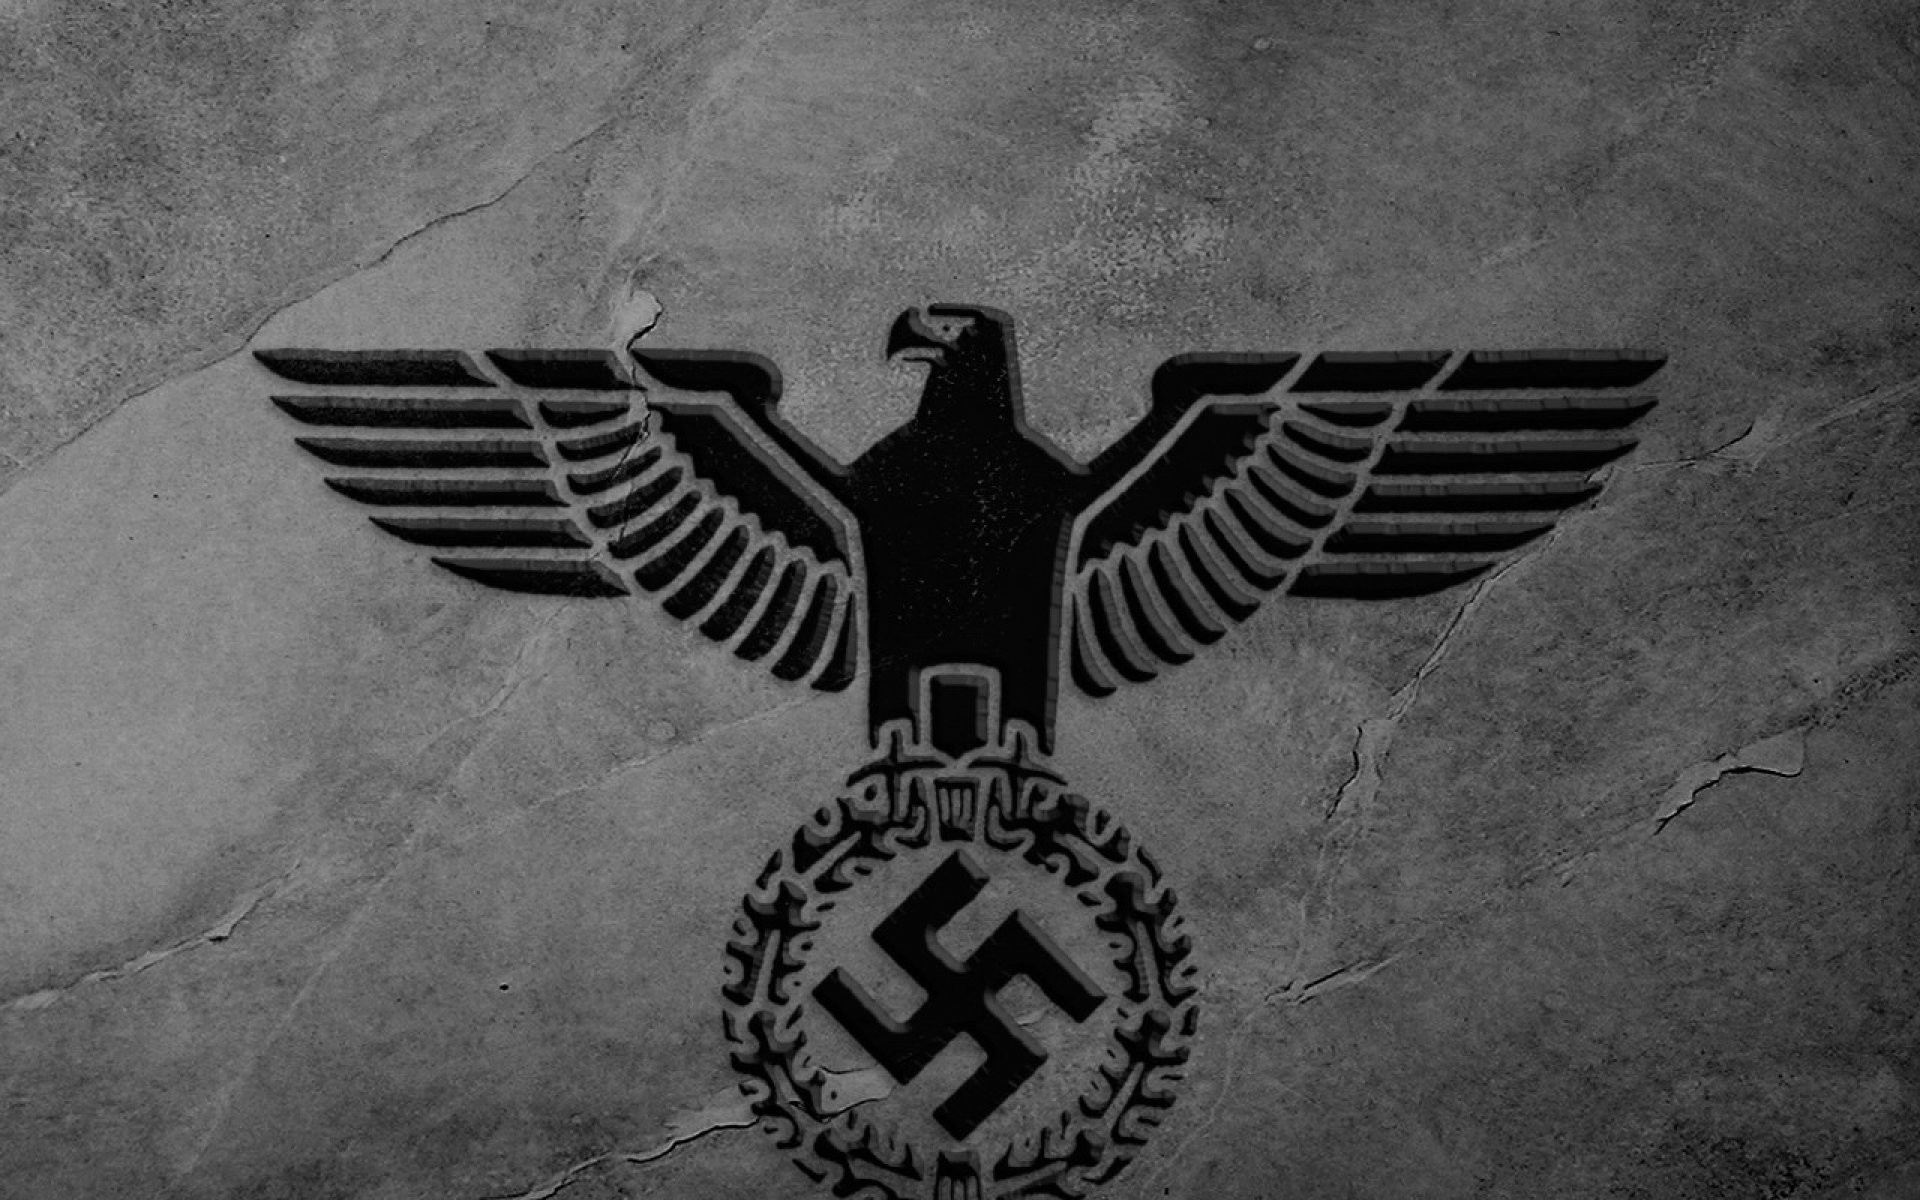 1920x1200 nazi, History, Adolf, Hitler, Dark, Evil, Military, Anarchy, War Wallpapers  HD / Desktop and Mobile Backgrounds